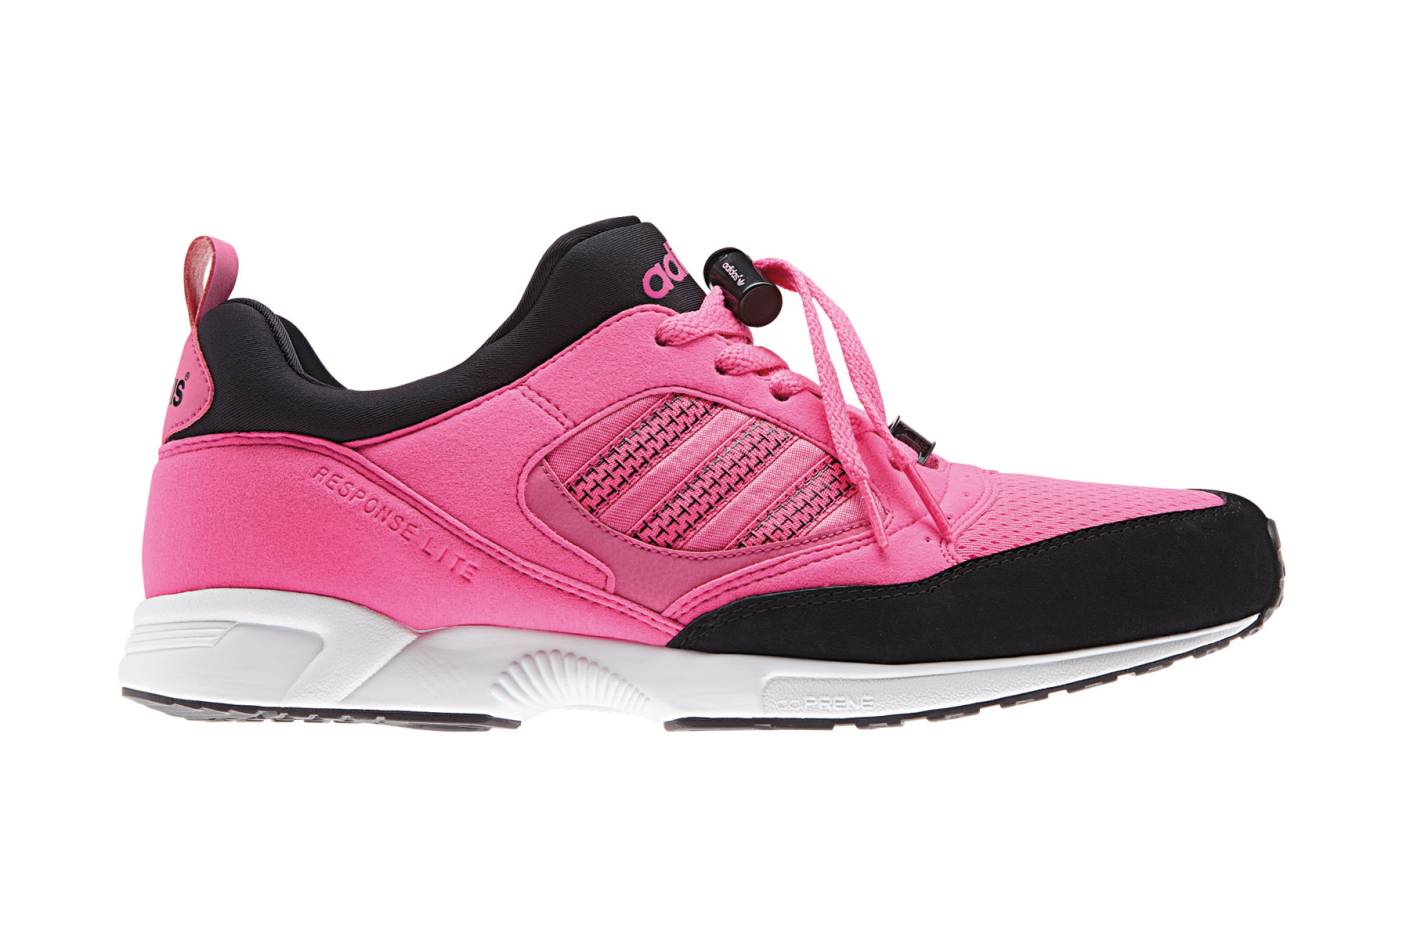 adidas-originals-2014-fall-winter-torsion-response-lite-4